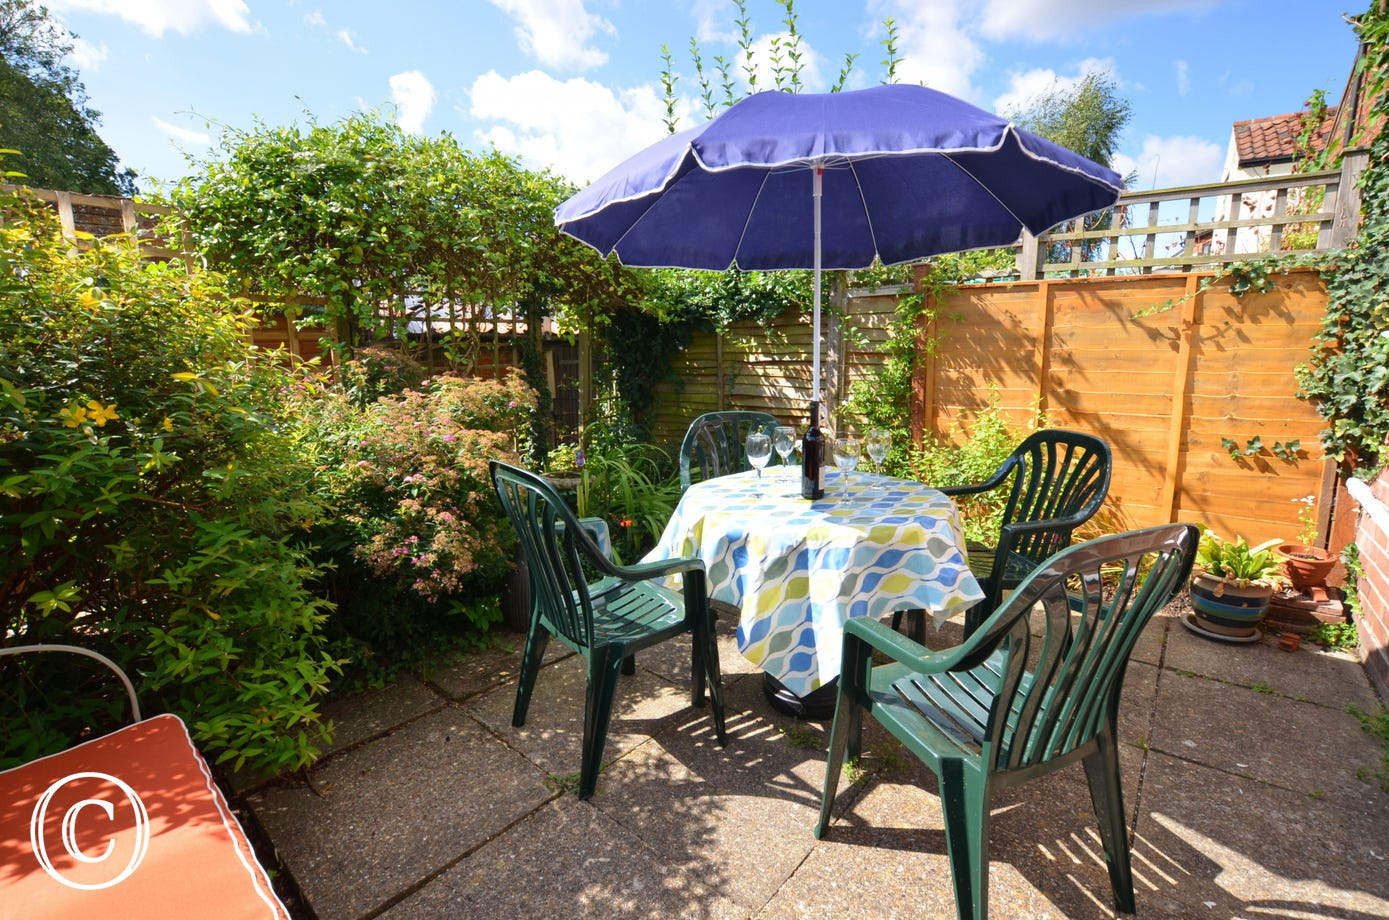 Patio garden - a suntrap, ideal for dining outside on a warm summers evening